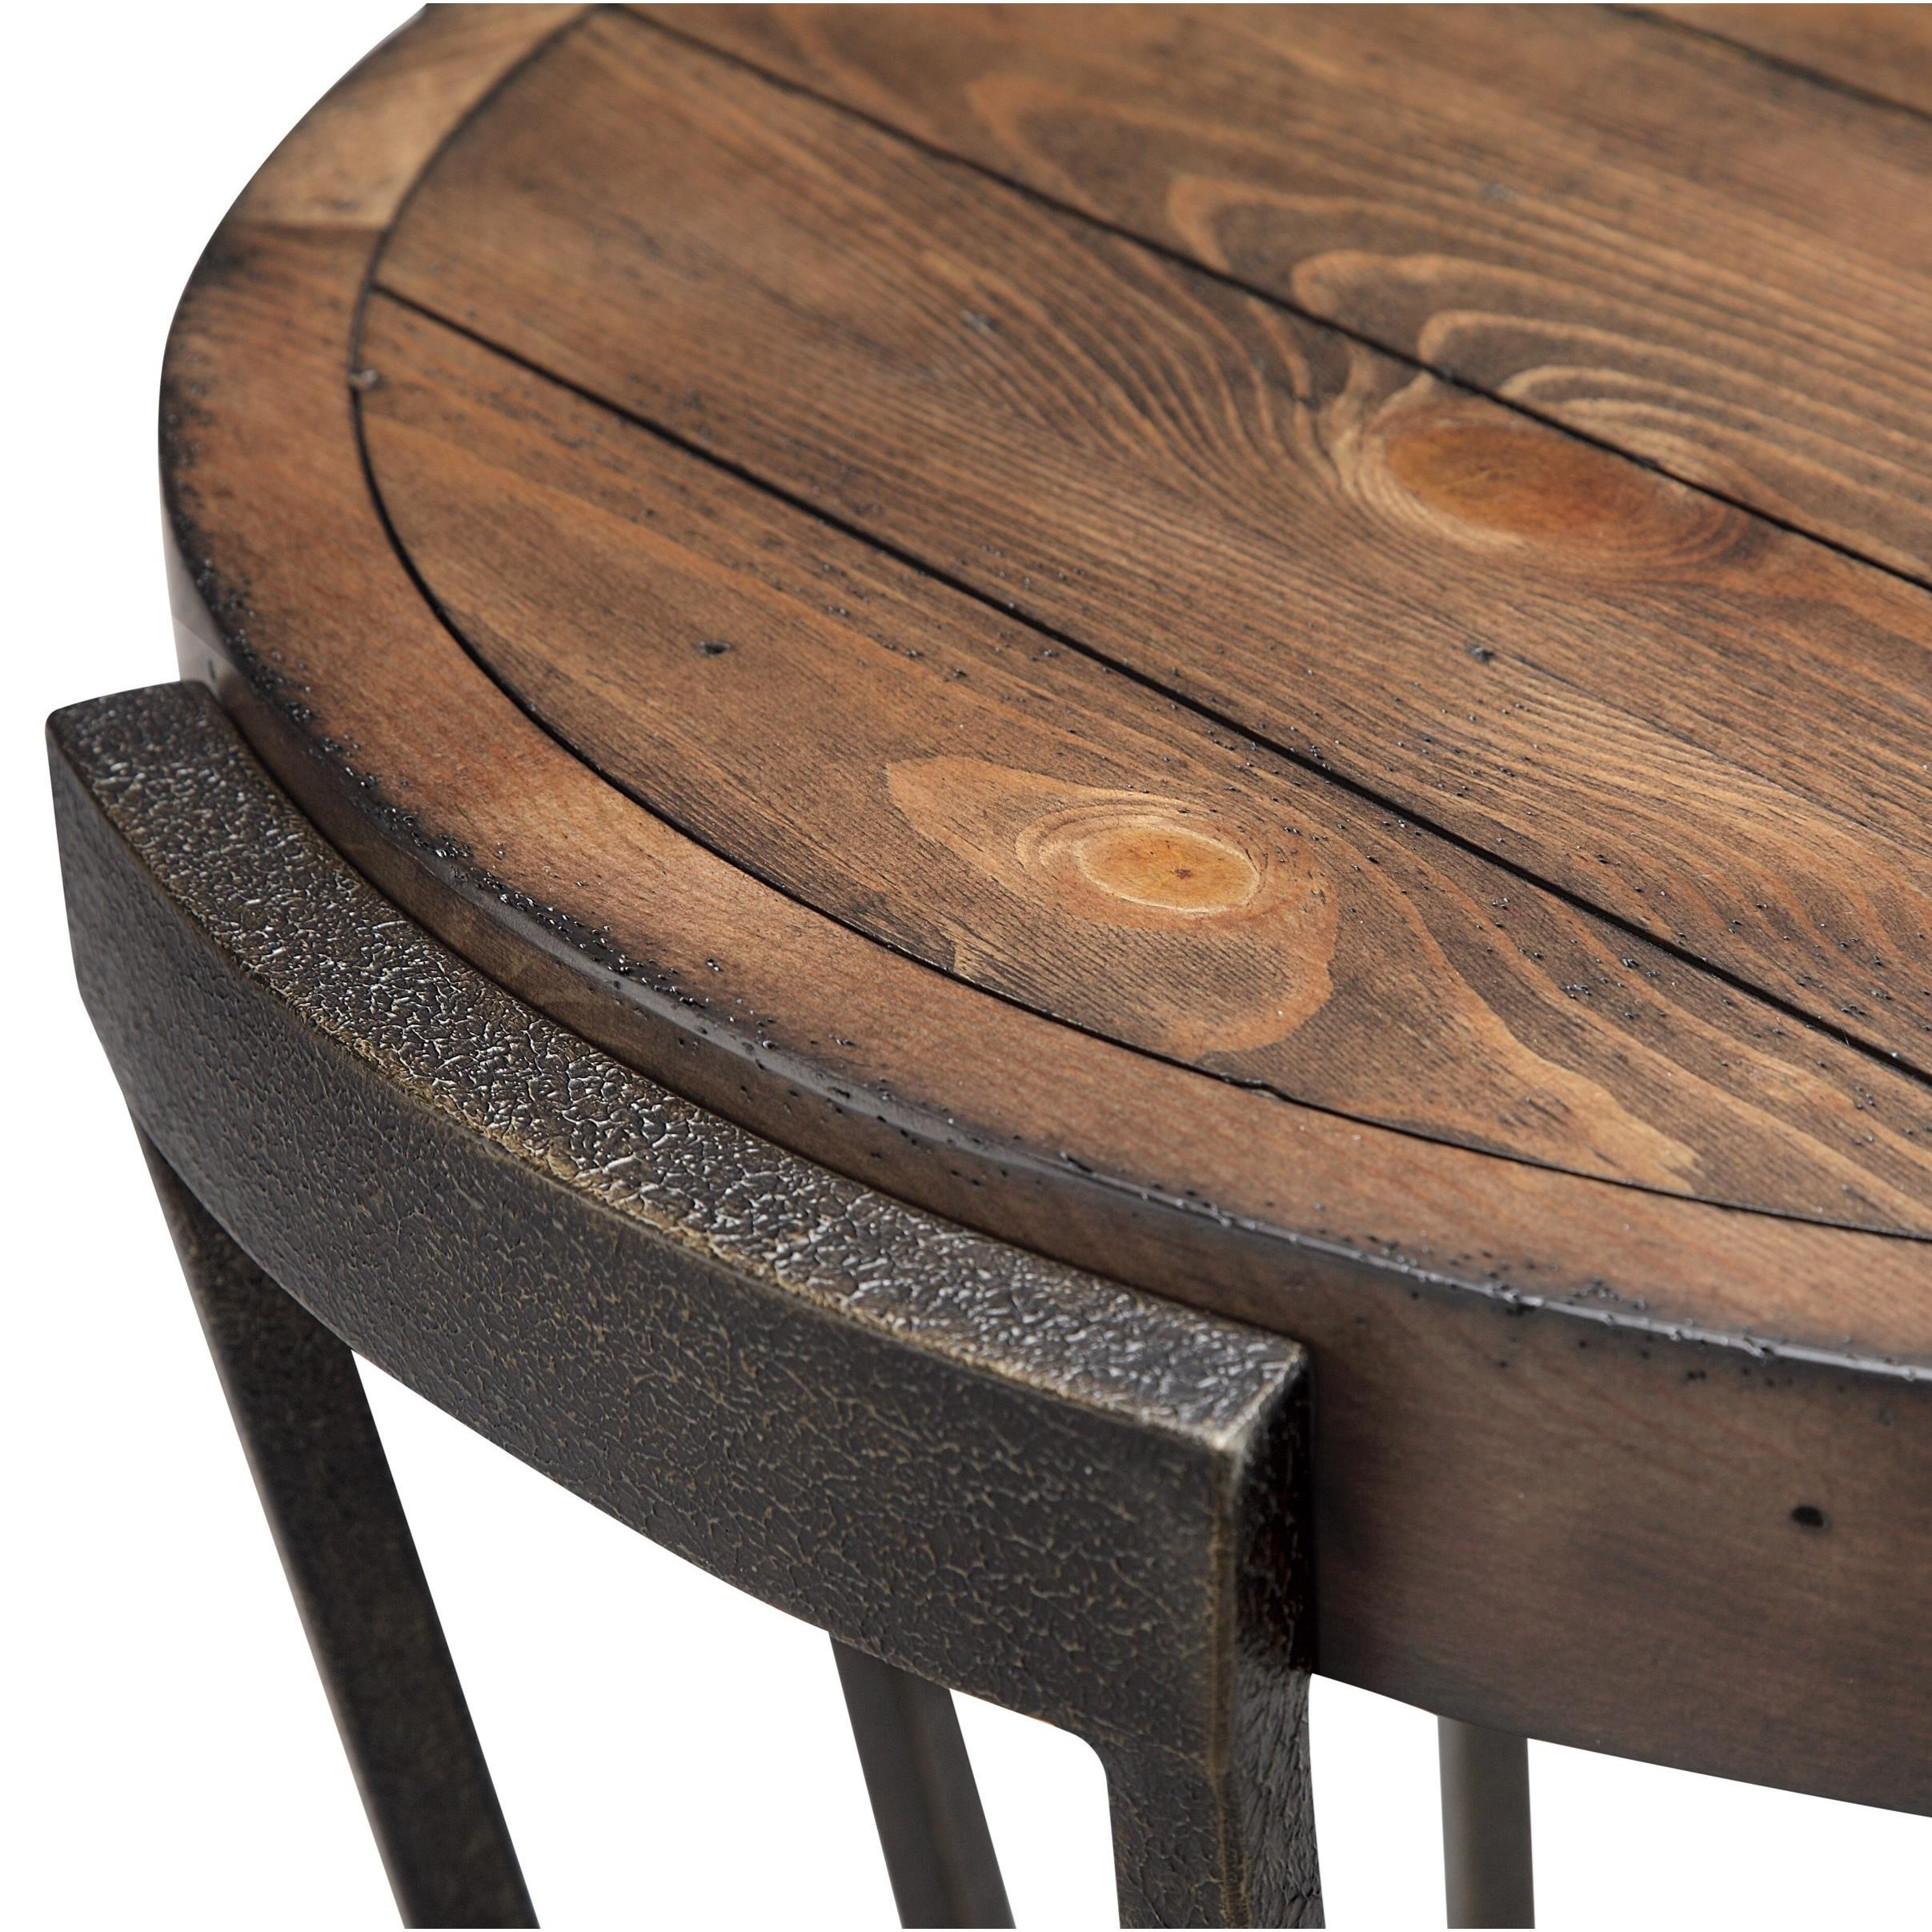 Magnussen Home Cranfill Round Cocktail Table: Magnussen Home Yukon Round Cocktail Table With Casters